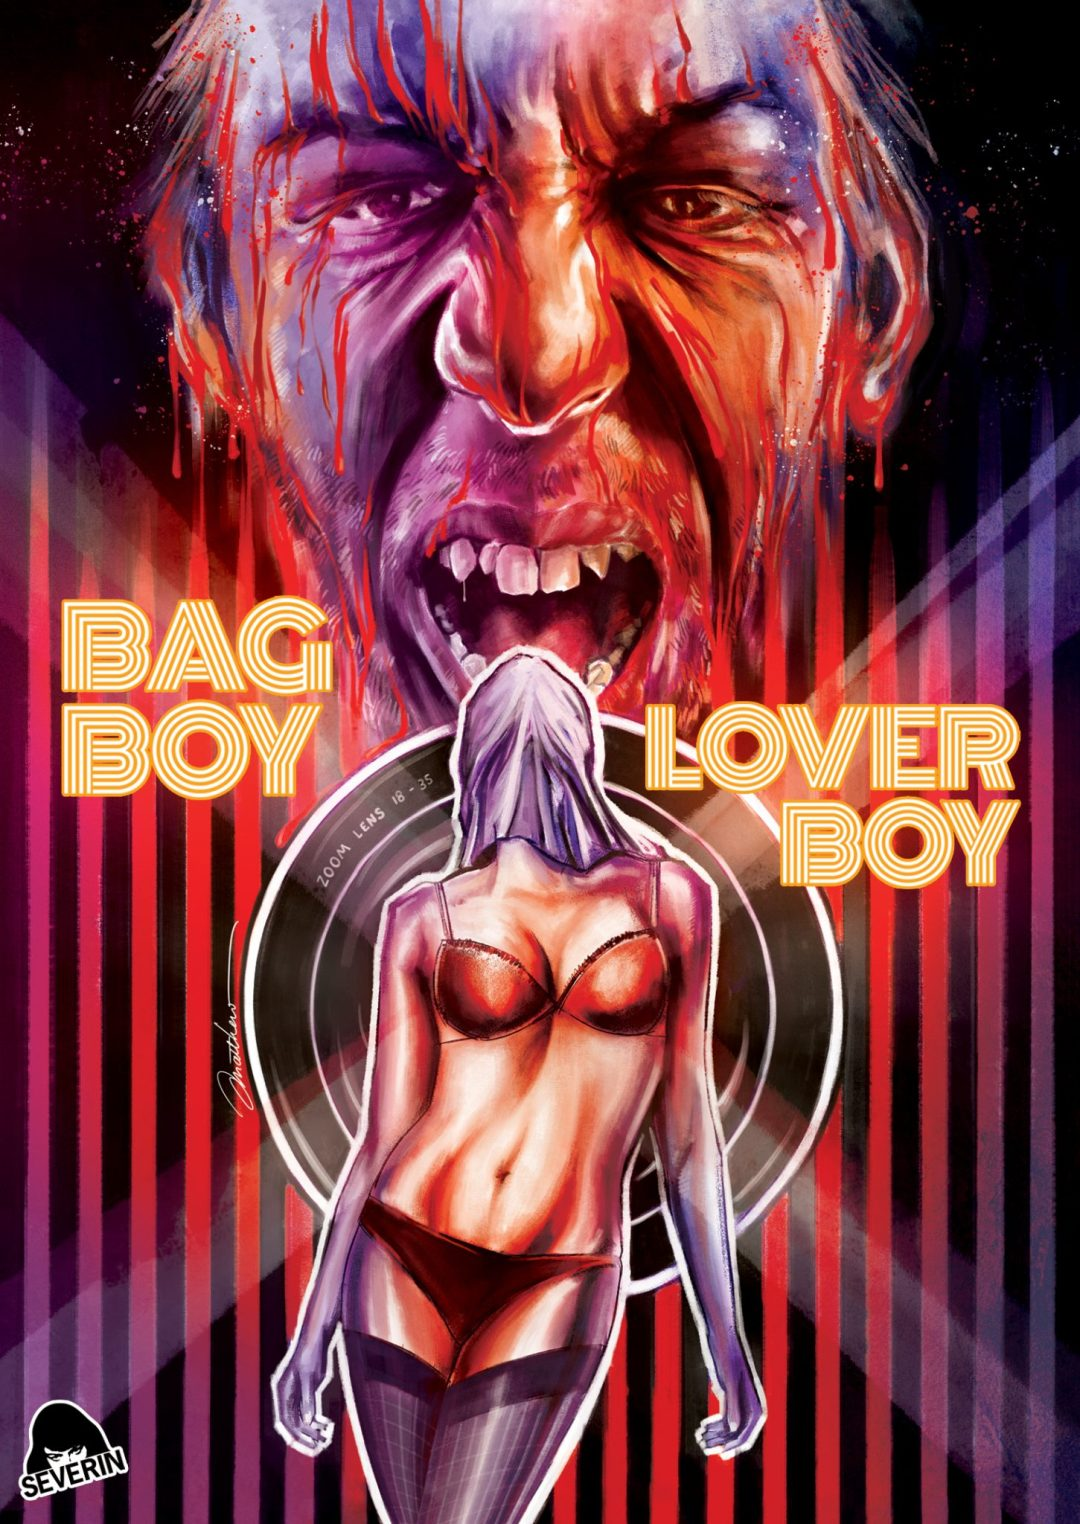 Severin Films Brings Controversial 'Bag Boy Lover Boy' to Home Video on July 25th!